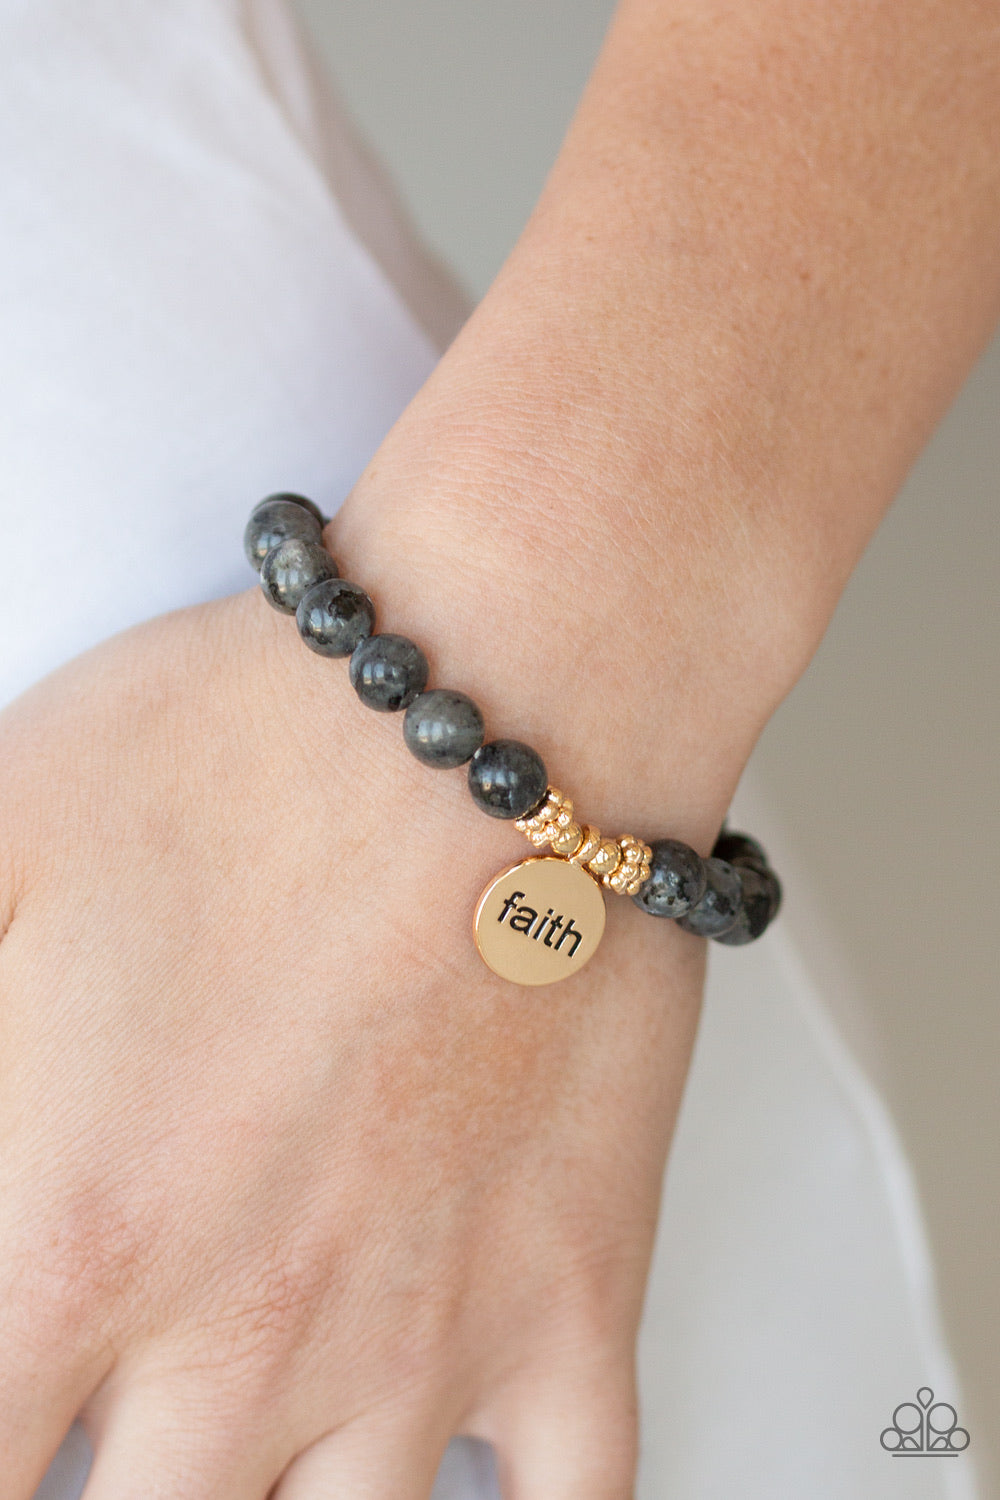 Paparazzi Jewelry Bracelet FAITH It, Till You Make It - Black